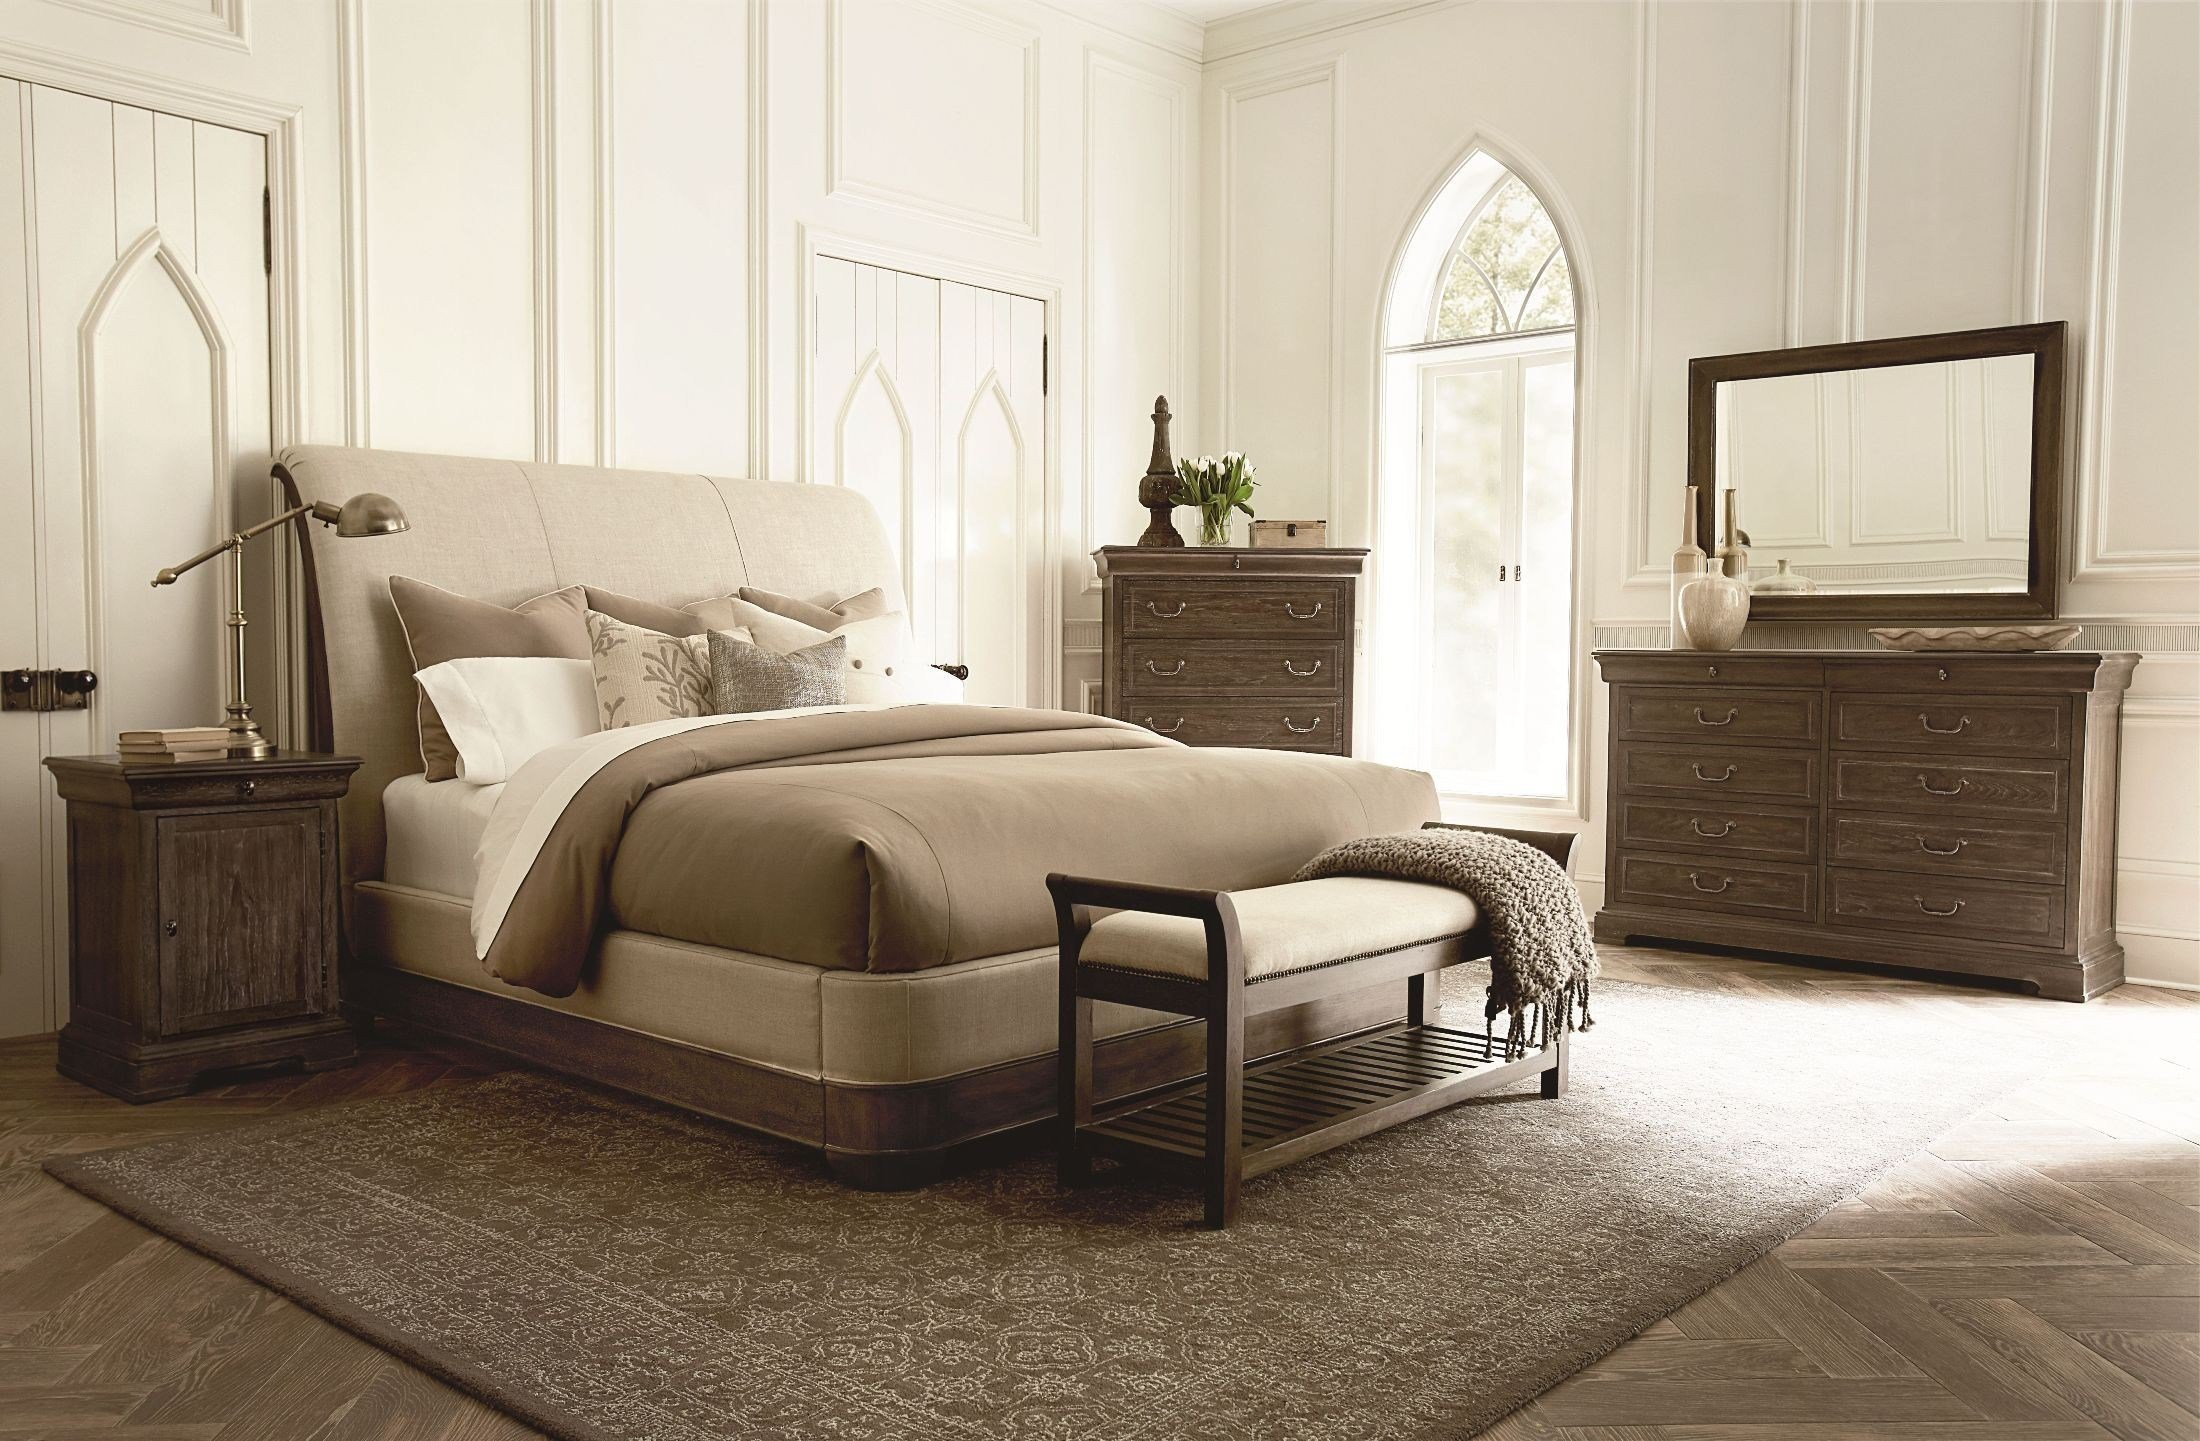 Best St Germain Upholstered Sleigh Bedroom Set From Art With Pictures